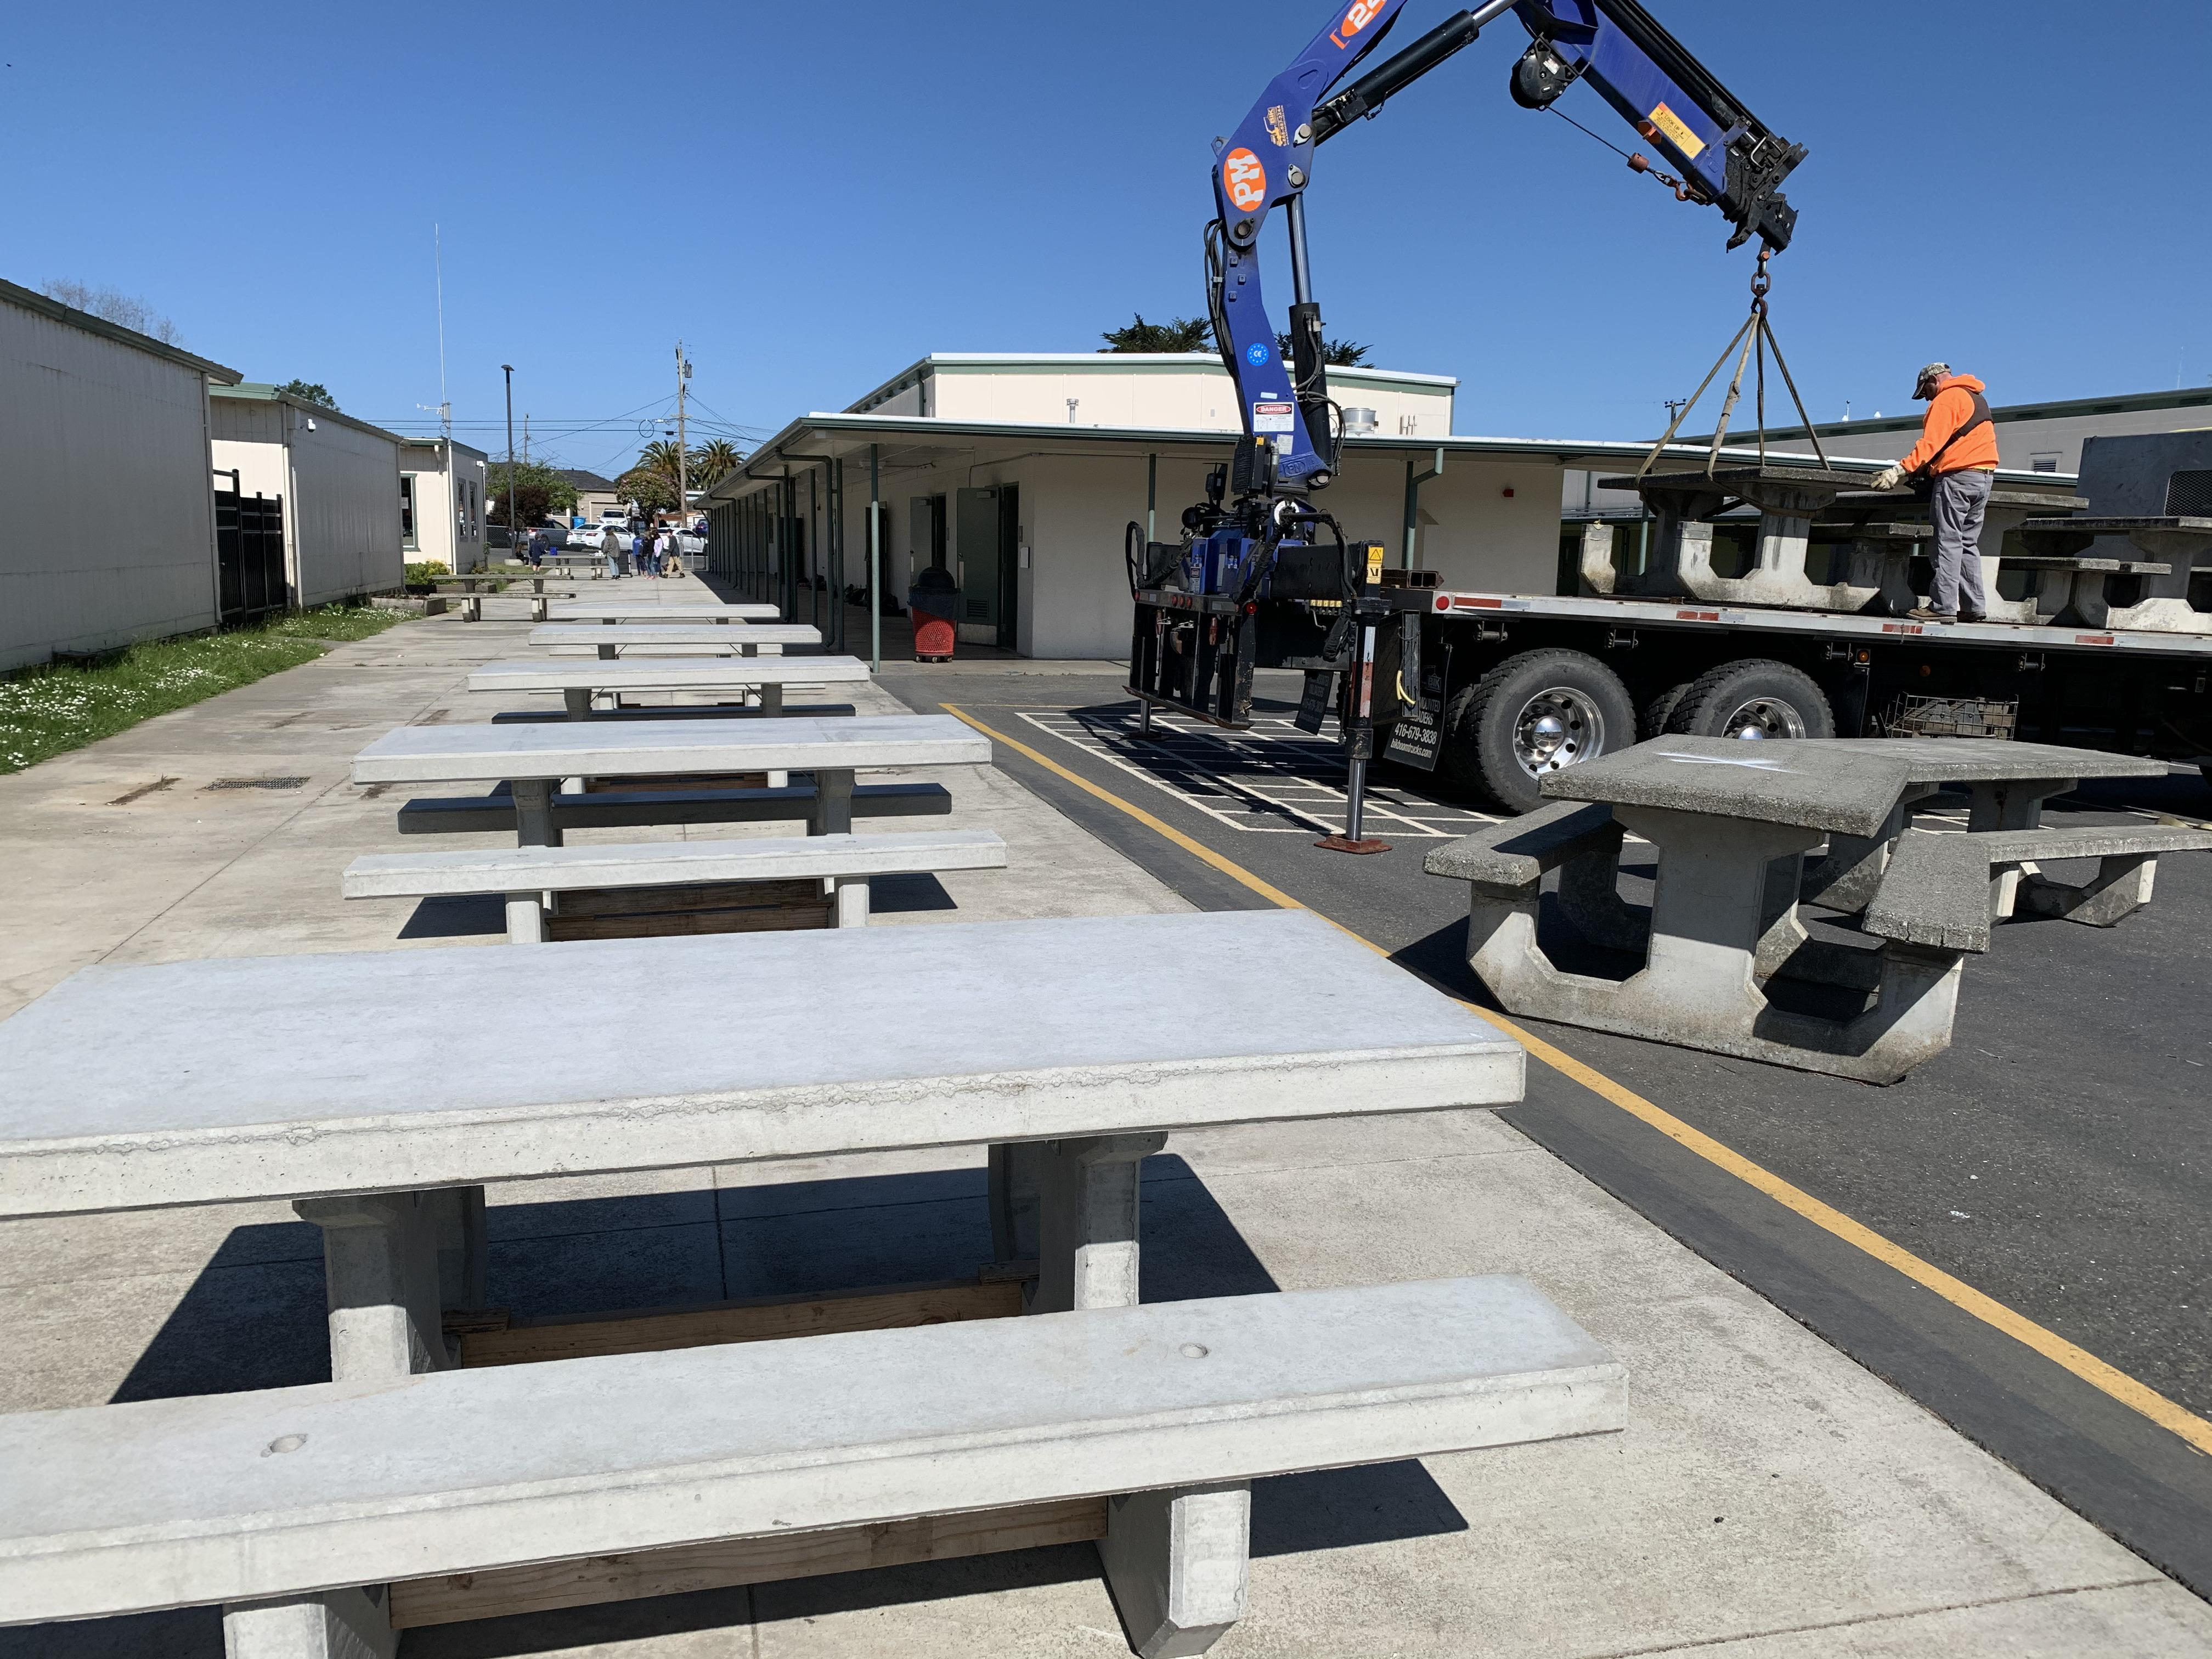 picnic tables and crane